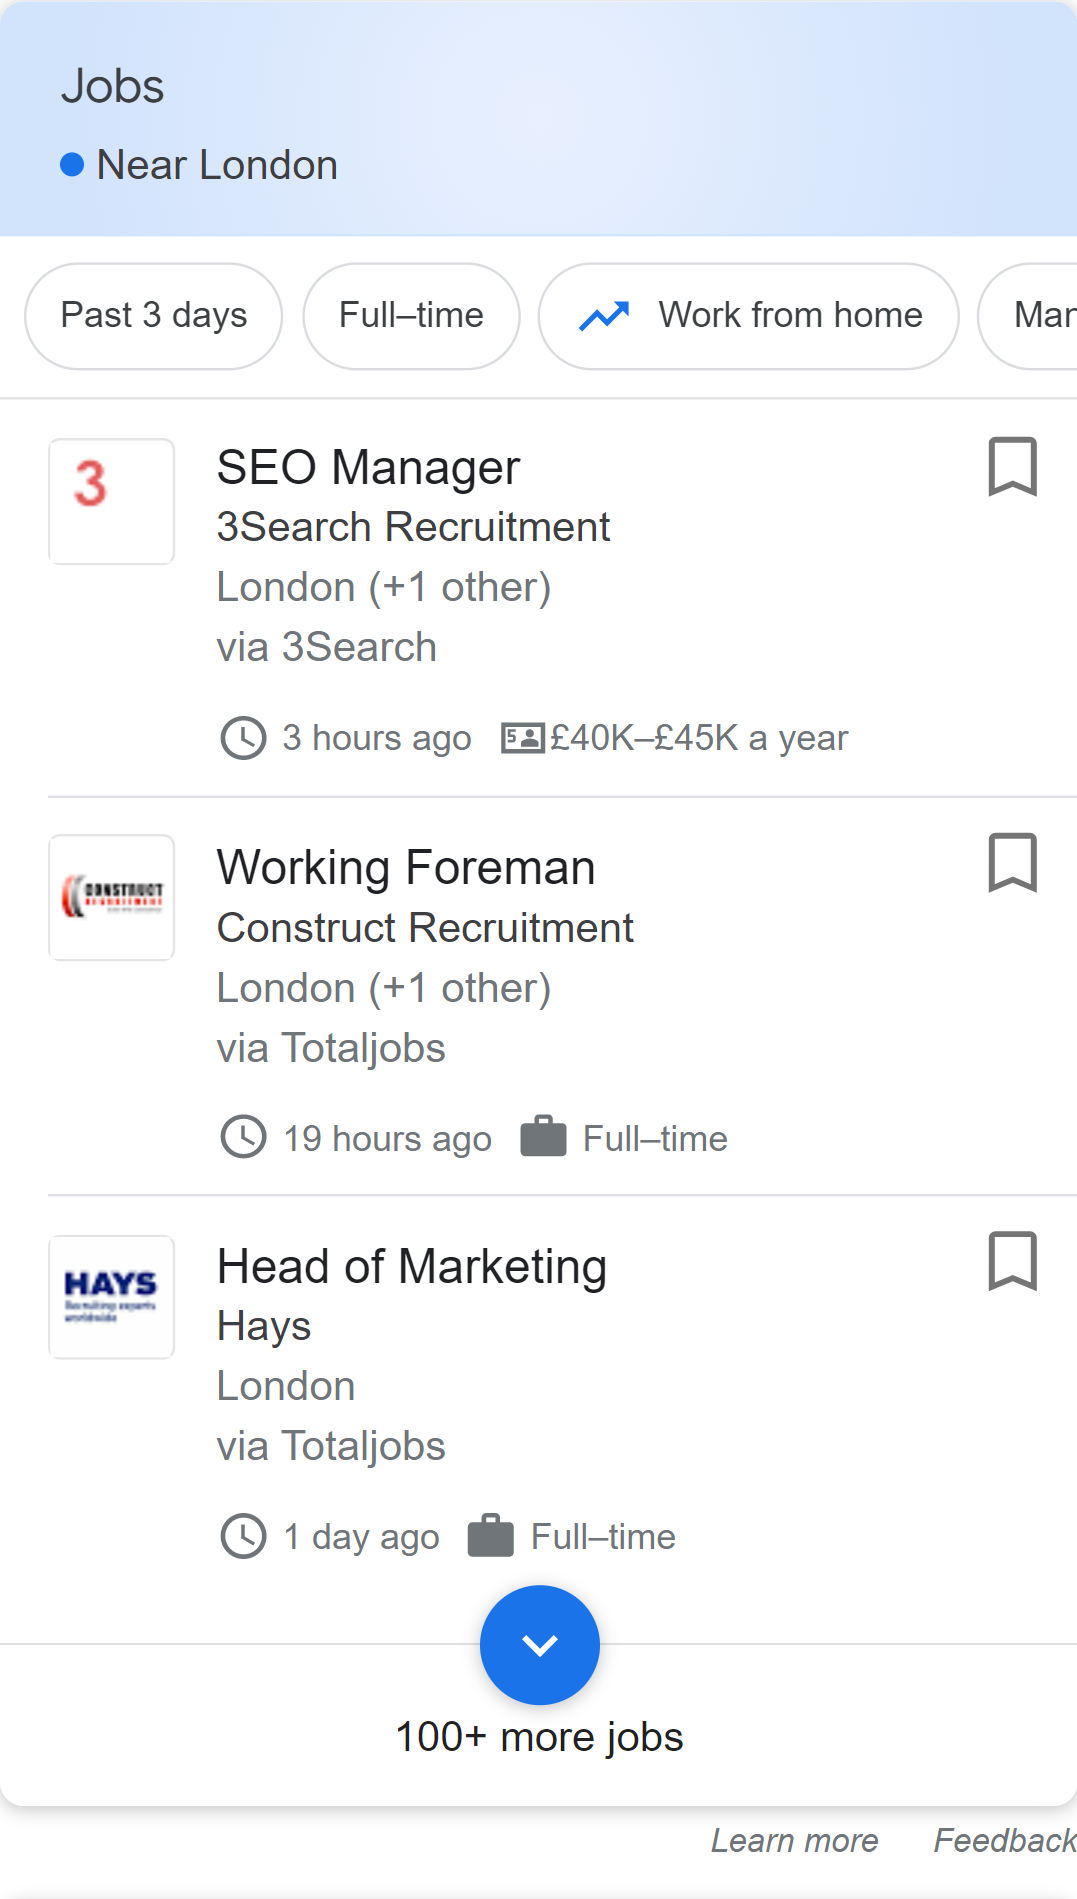 jobs listing example in Google search